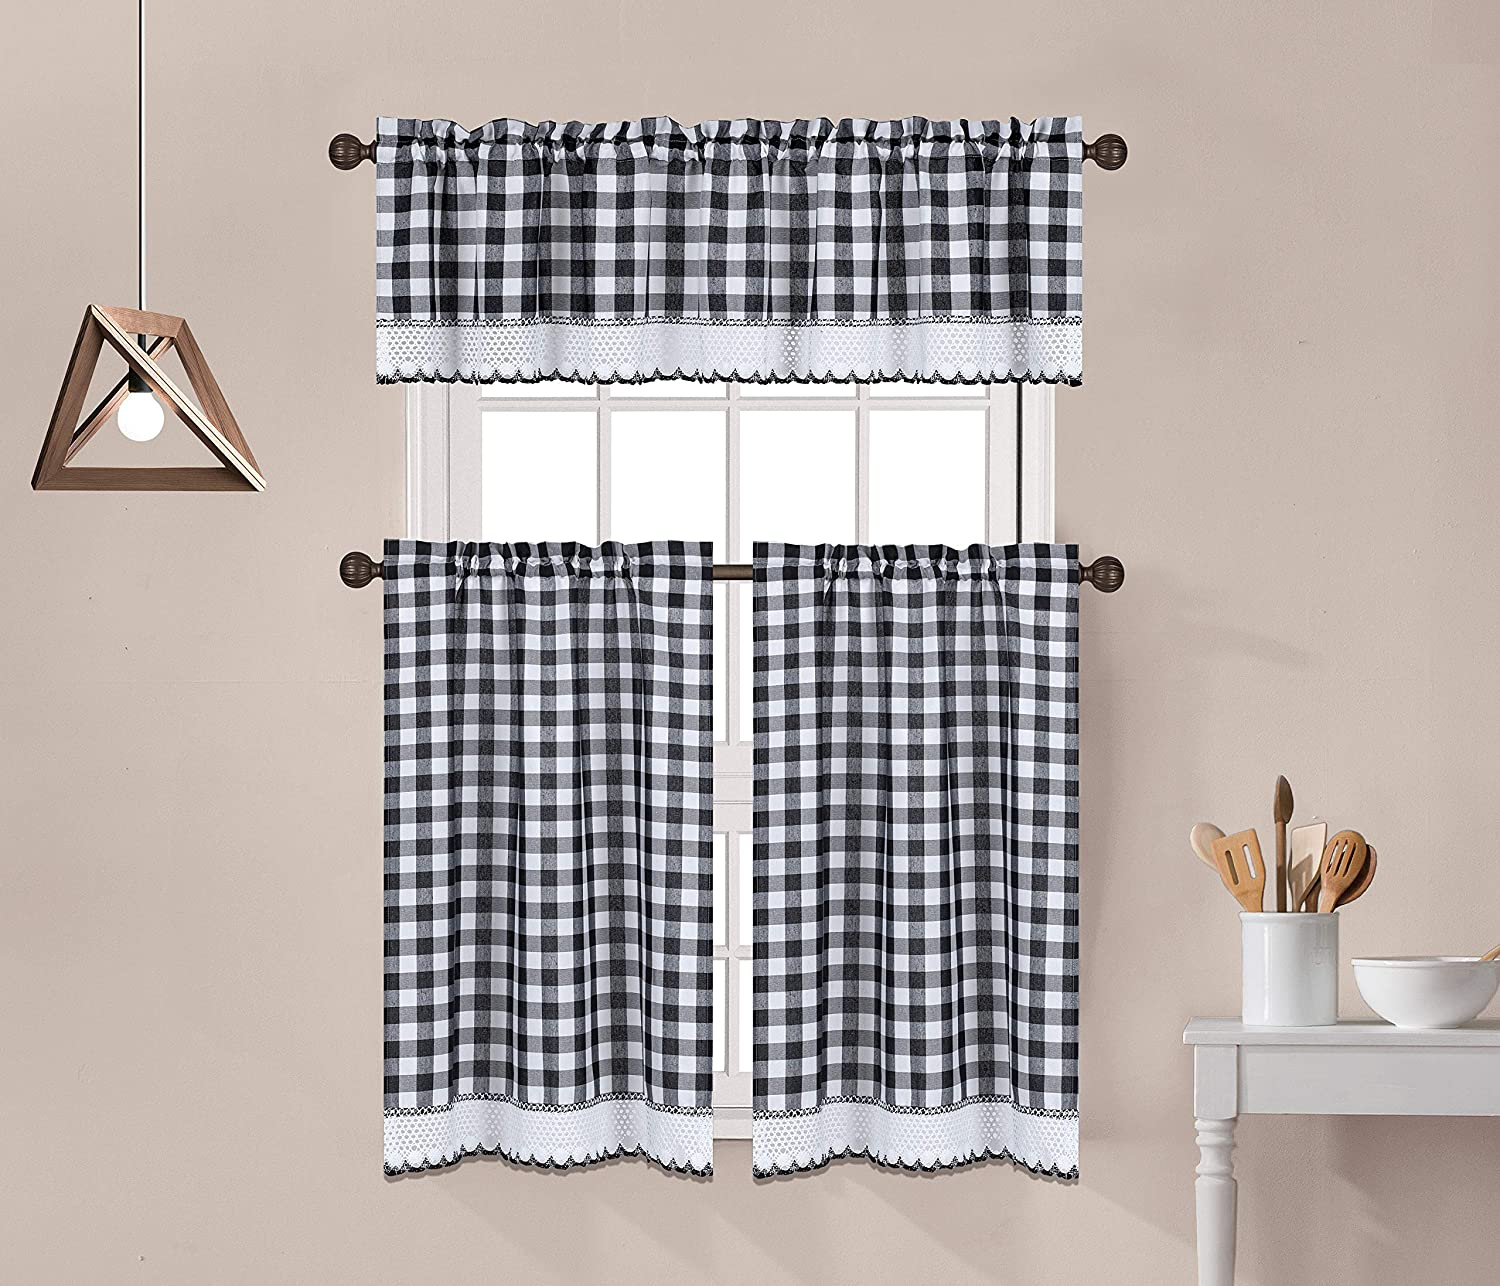 3 Pc Buffalo Check Gingham Crochet Lace Trimmed Kitchen Window Curtain Tiers & Valance Set